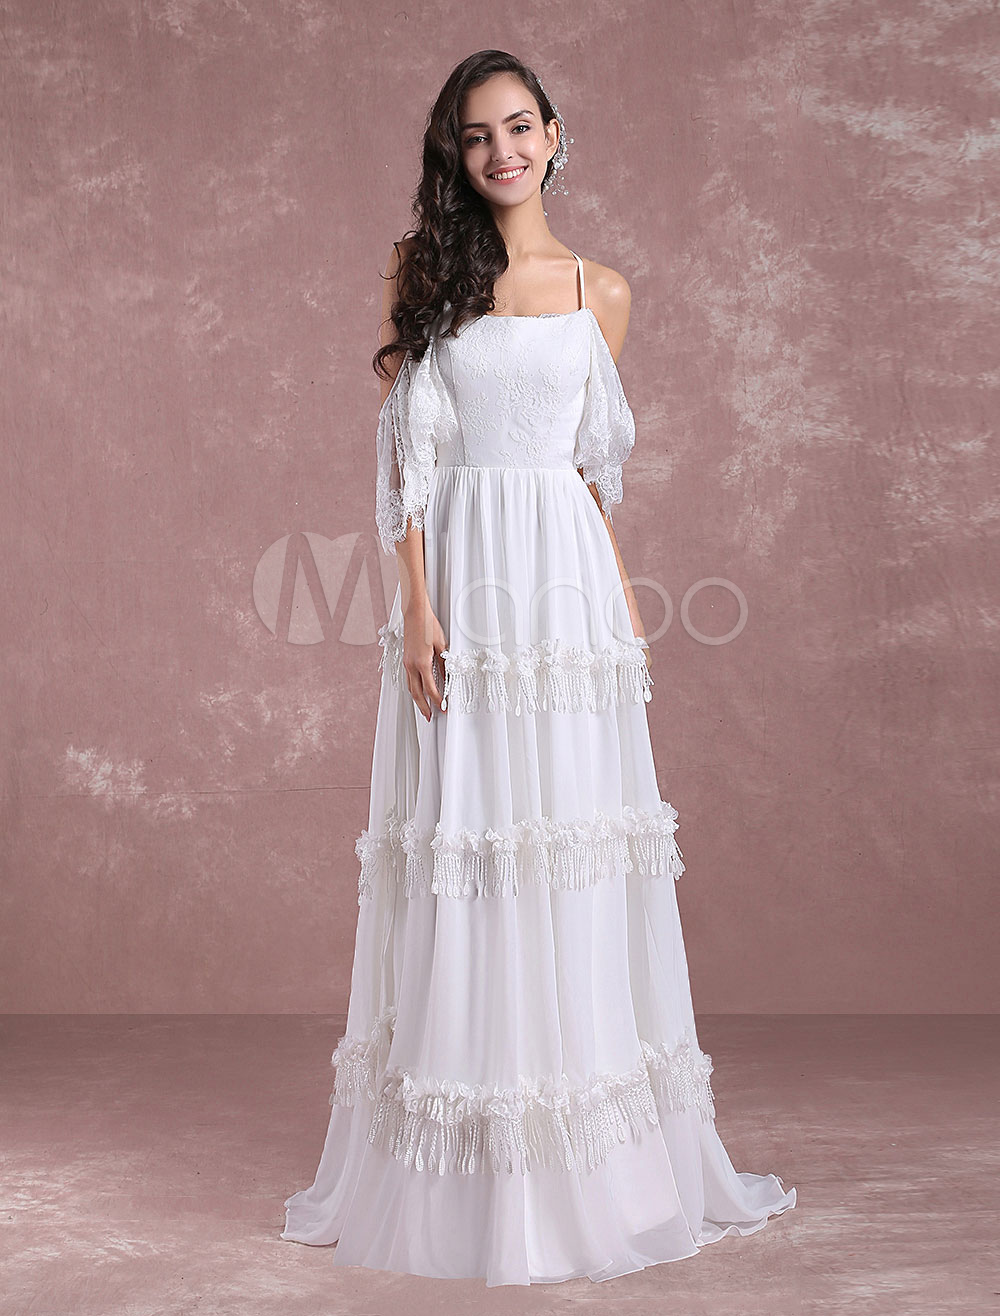 9c44650638 ... Summer Lace Chiffon Beach Bridal Gown Off The Shoulder Back Cross  Tiered. 12. 45%OFF. Color:White